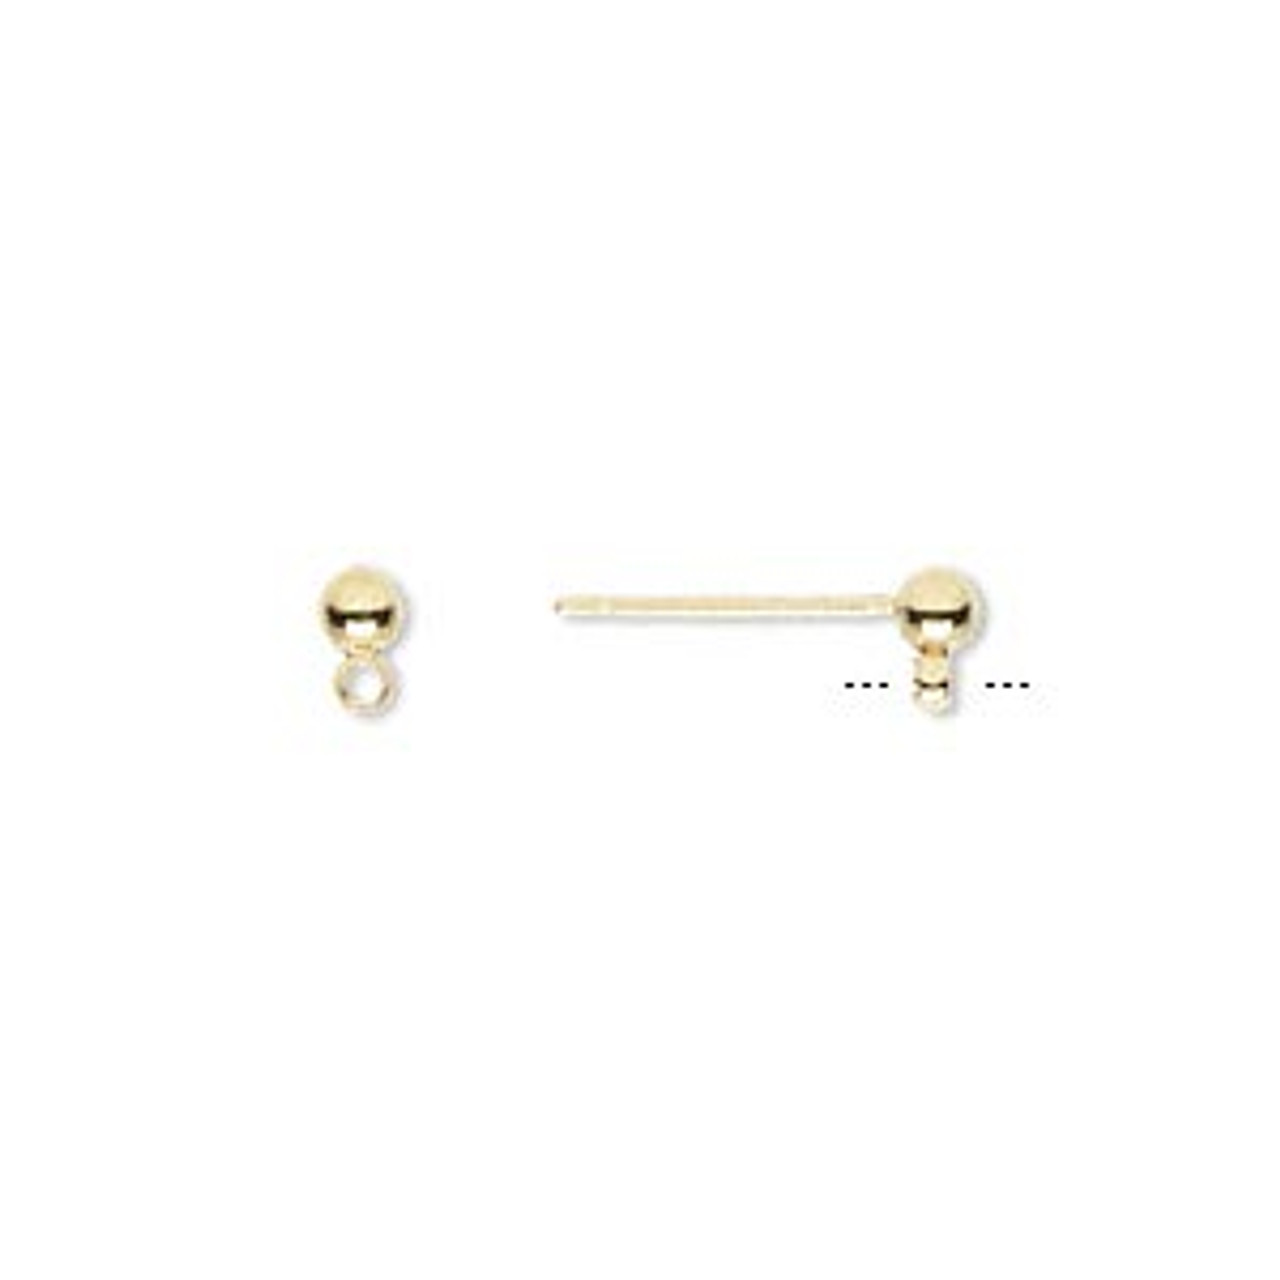 3mm Gold Plated Ball Post Earrings (4 Pairs)